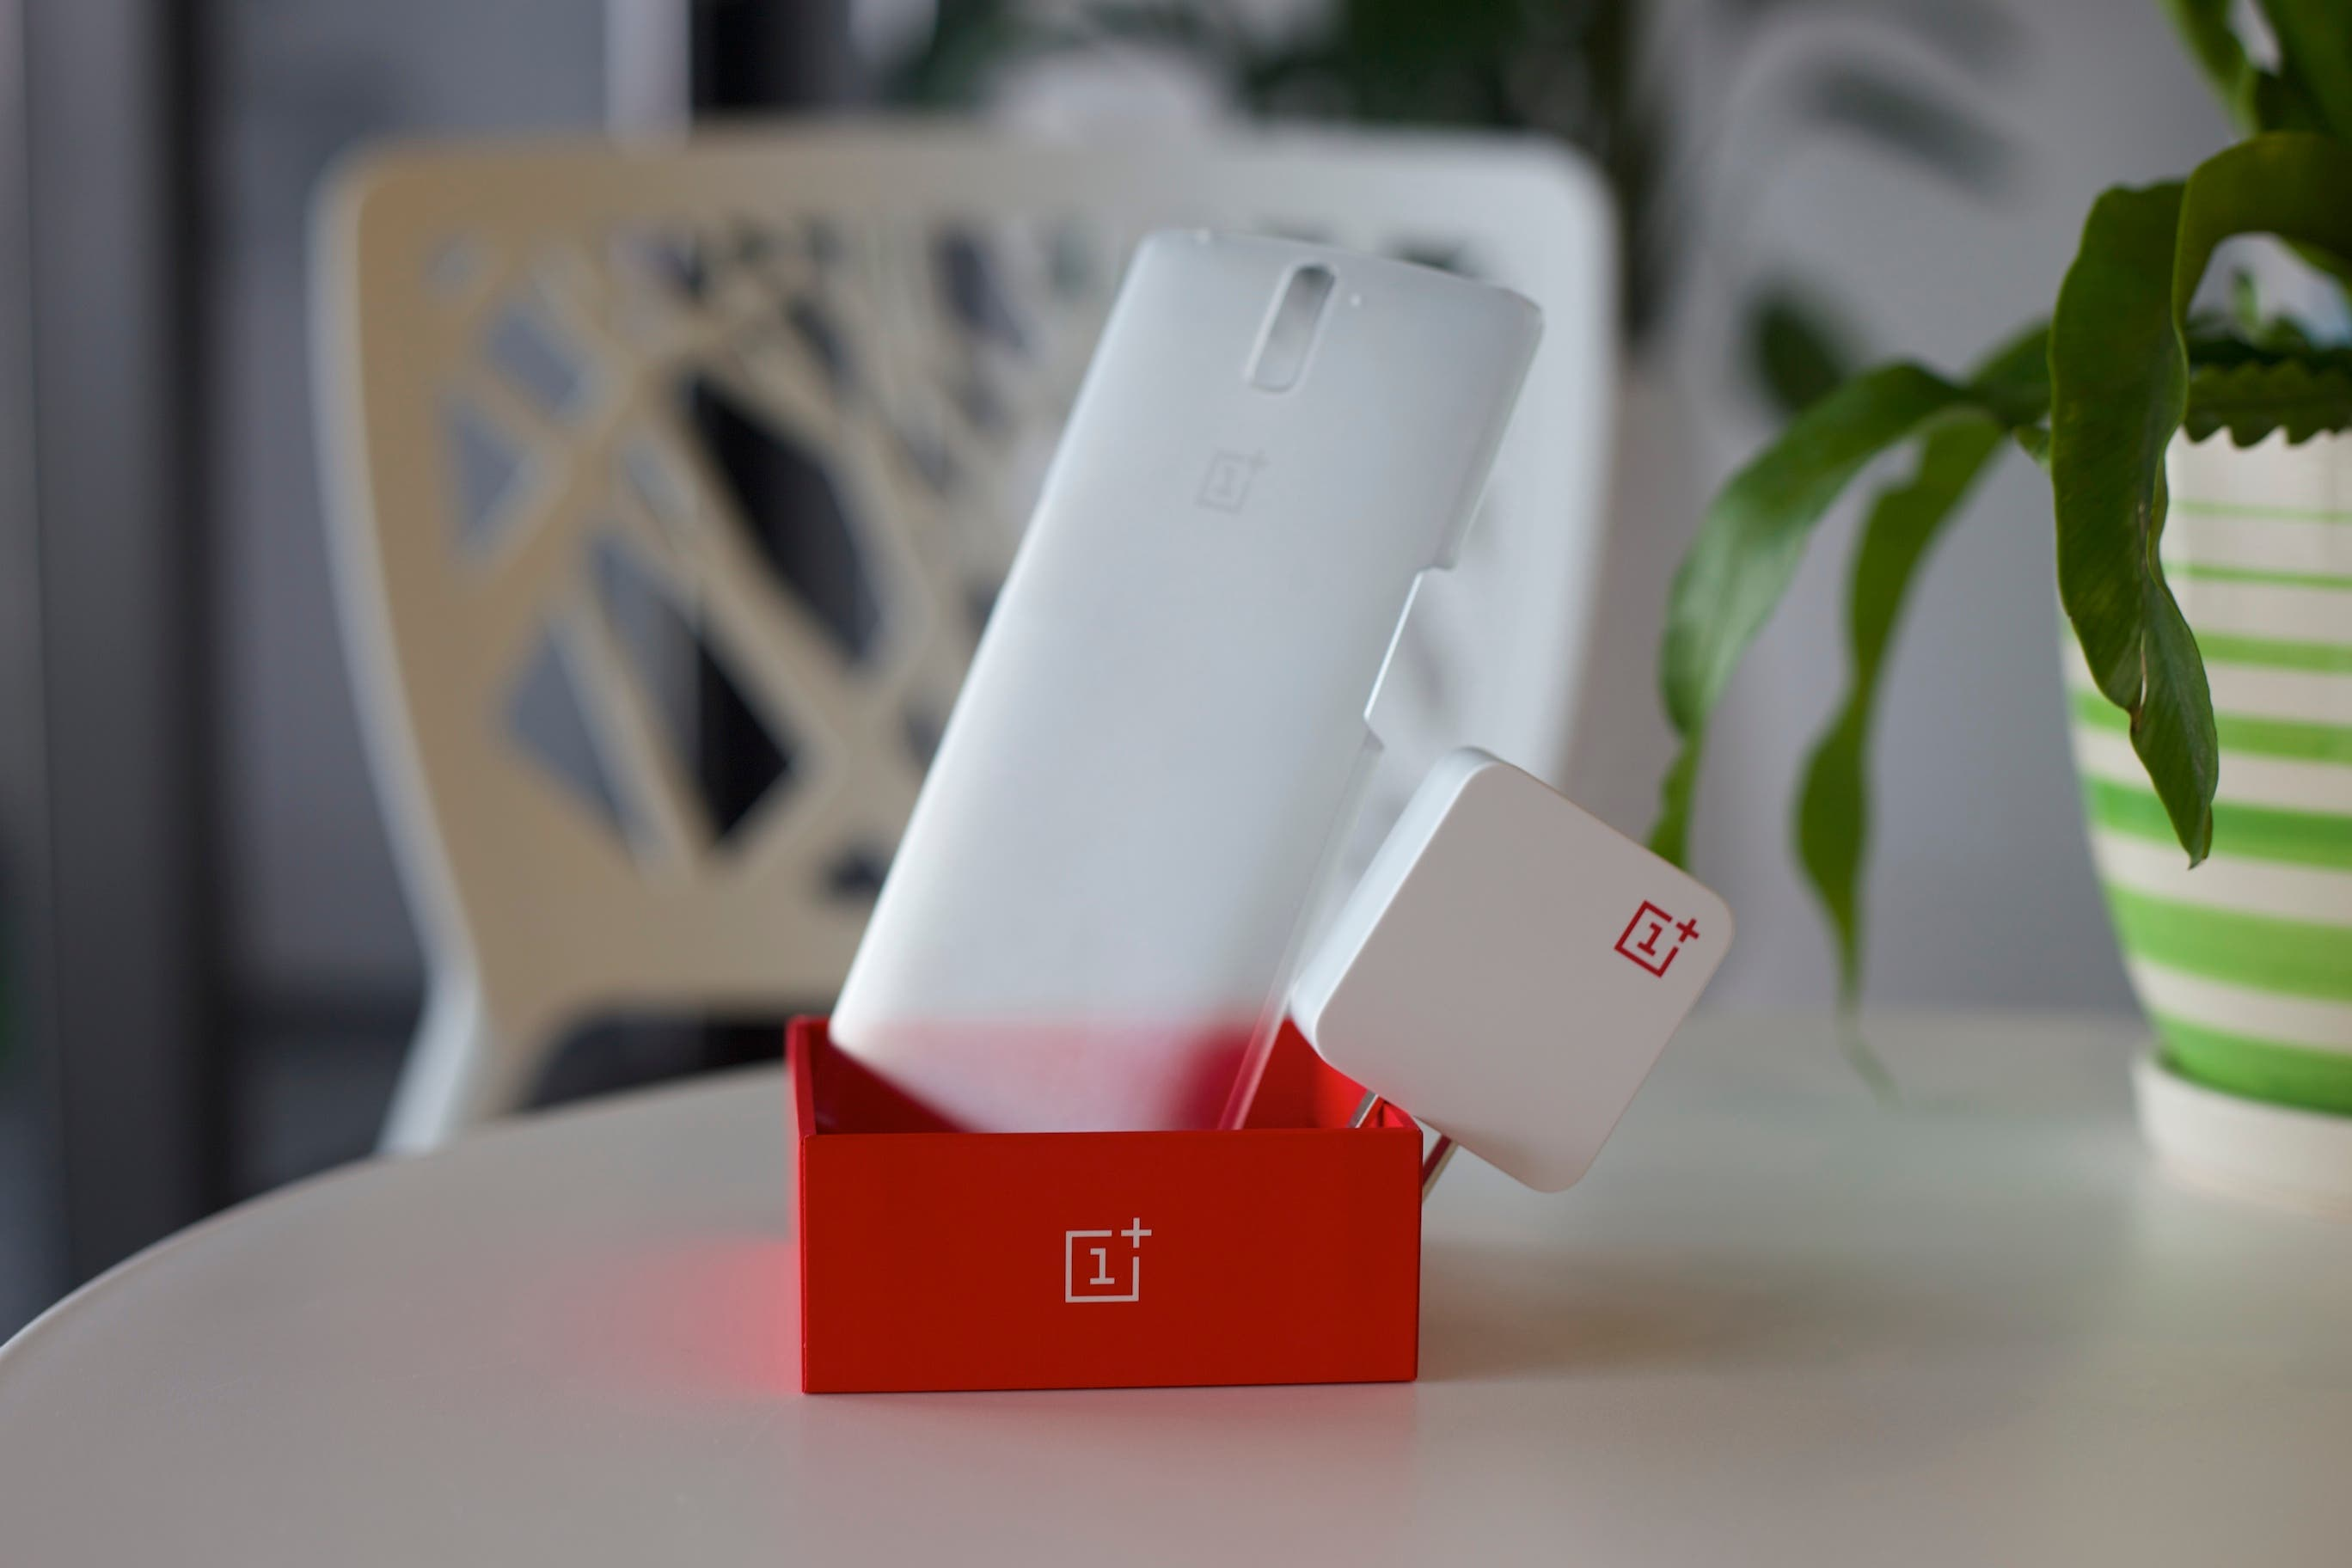 oneplus one accessories